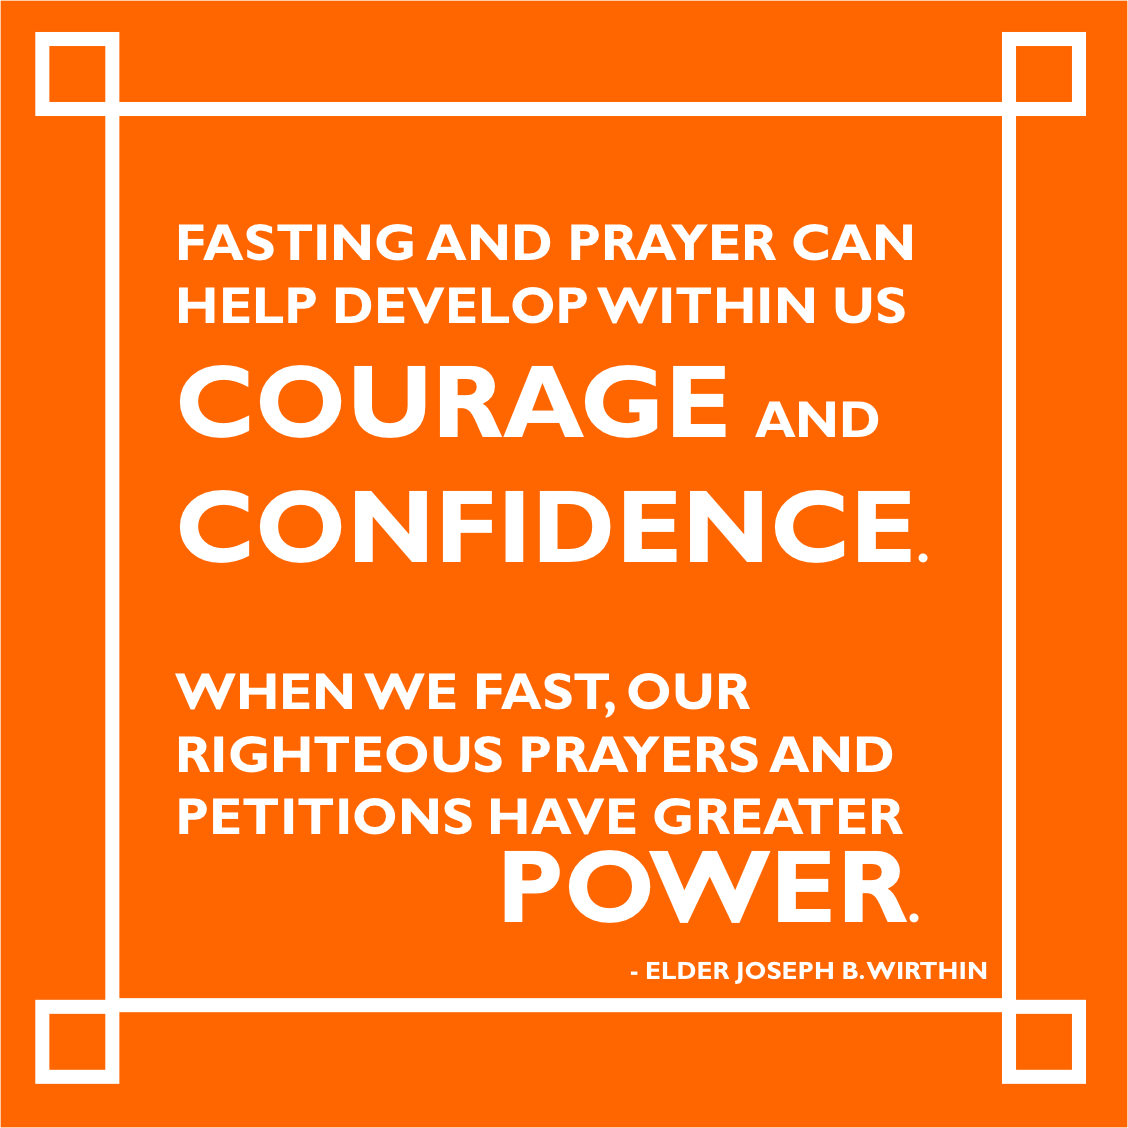 Fasting And Prayer Can Help Develop Within Us Courage And Confidence